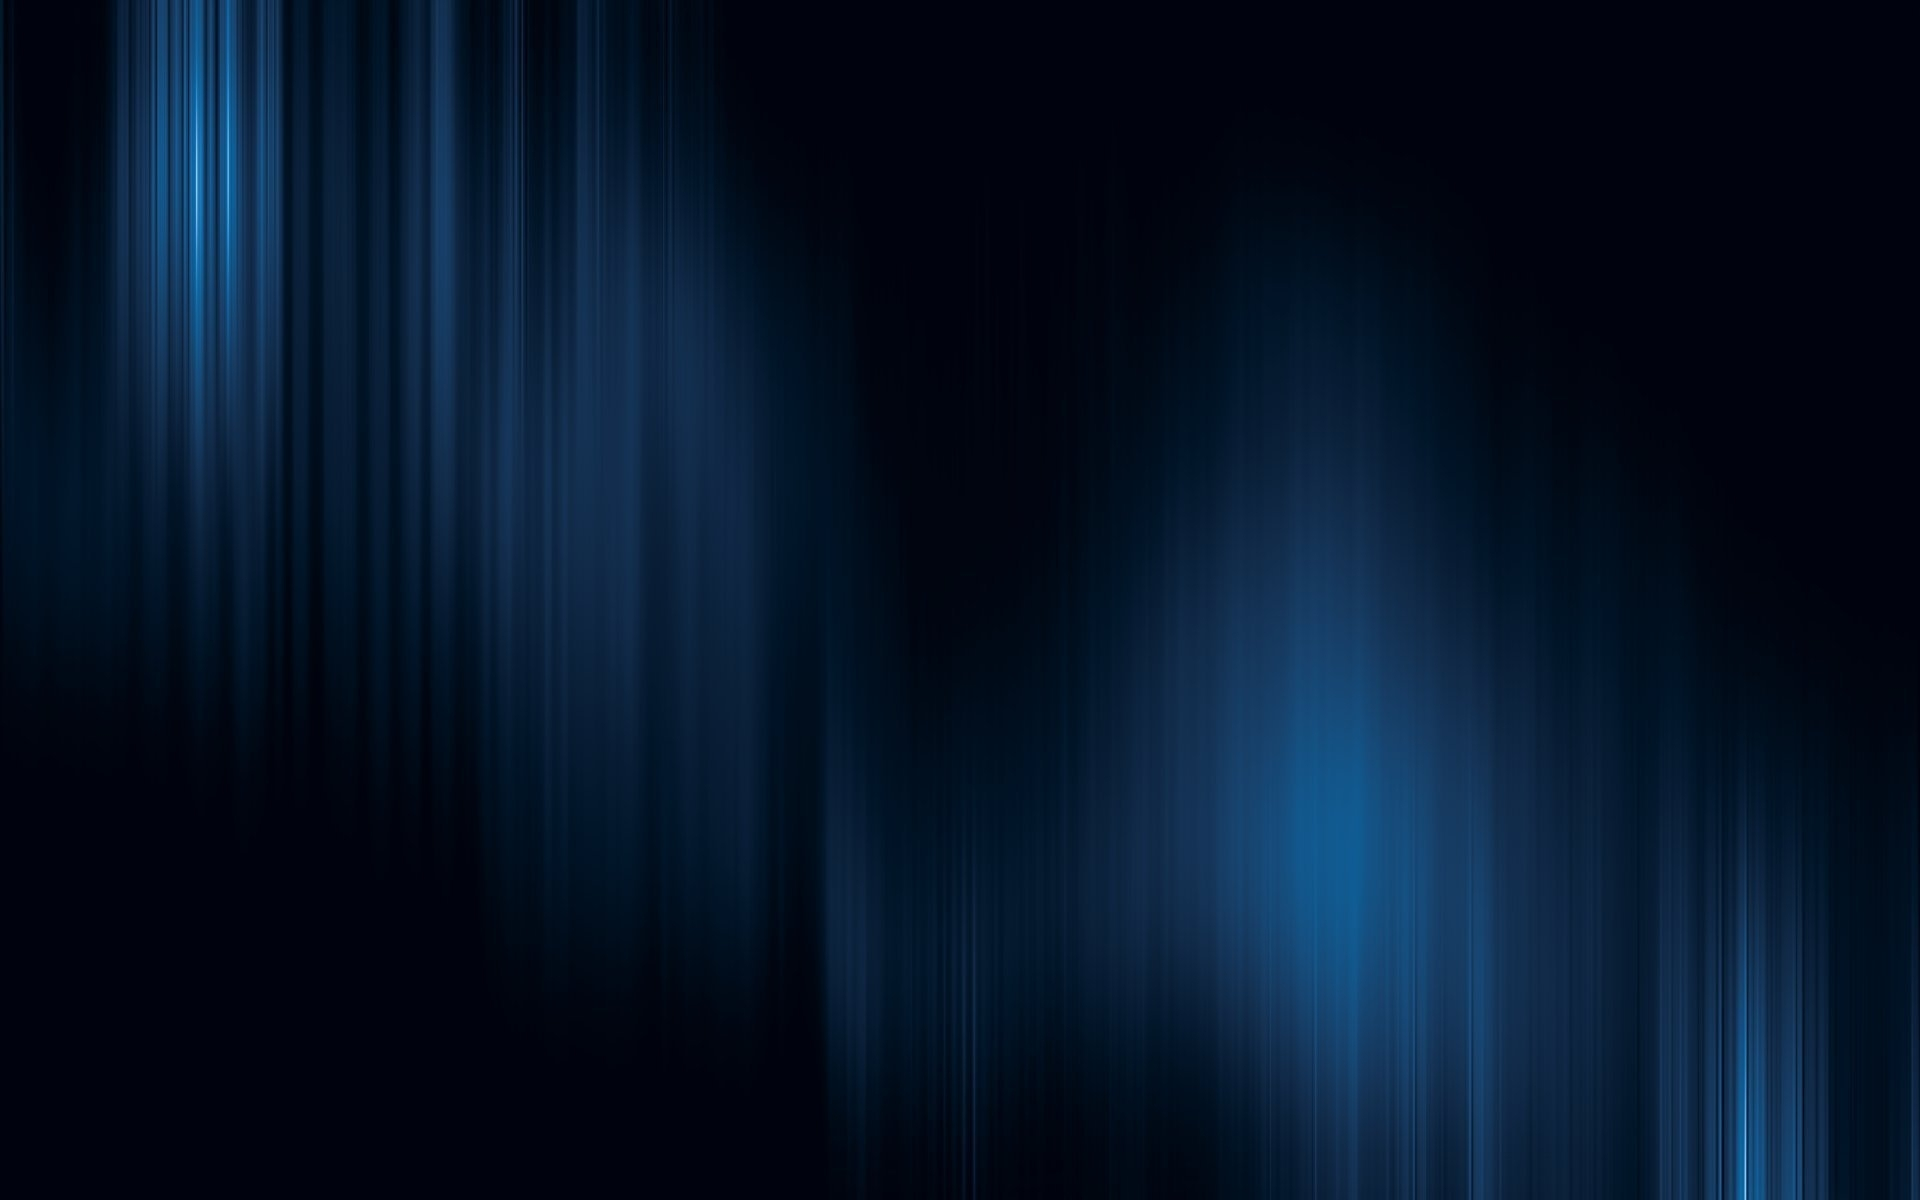 black-and-blue-wallpaper-free-download - wallpaper.wiki